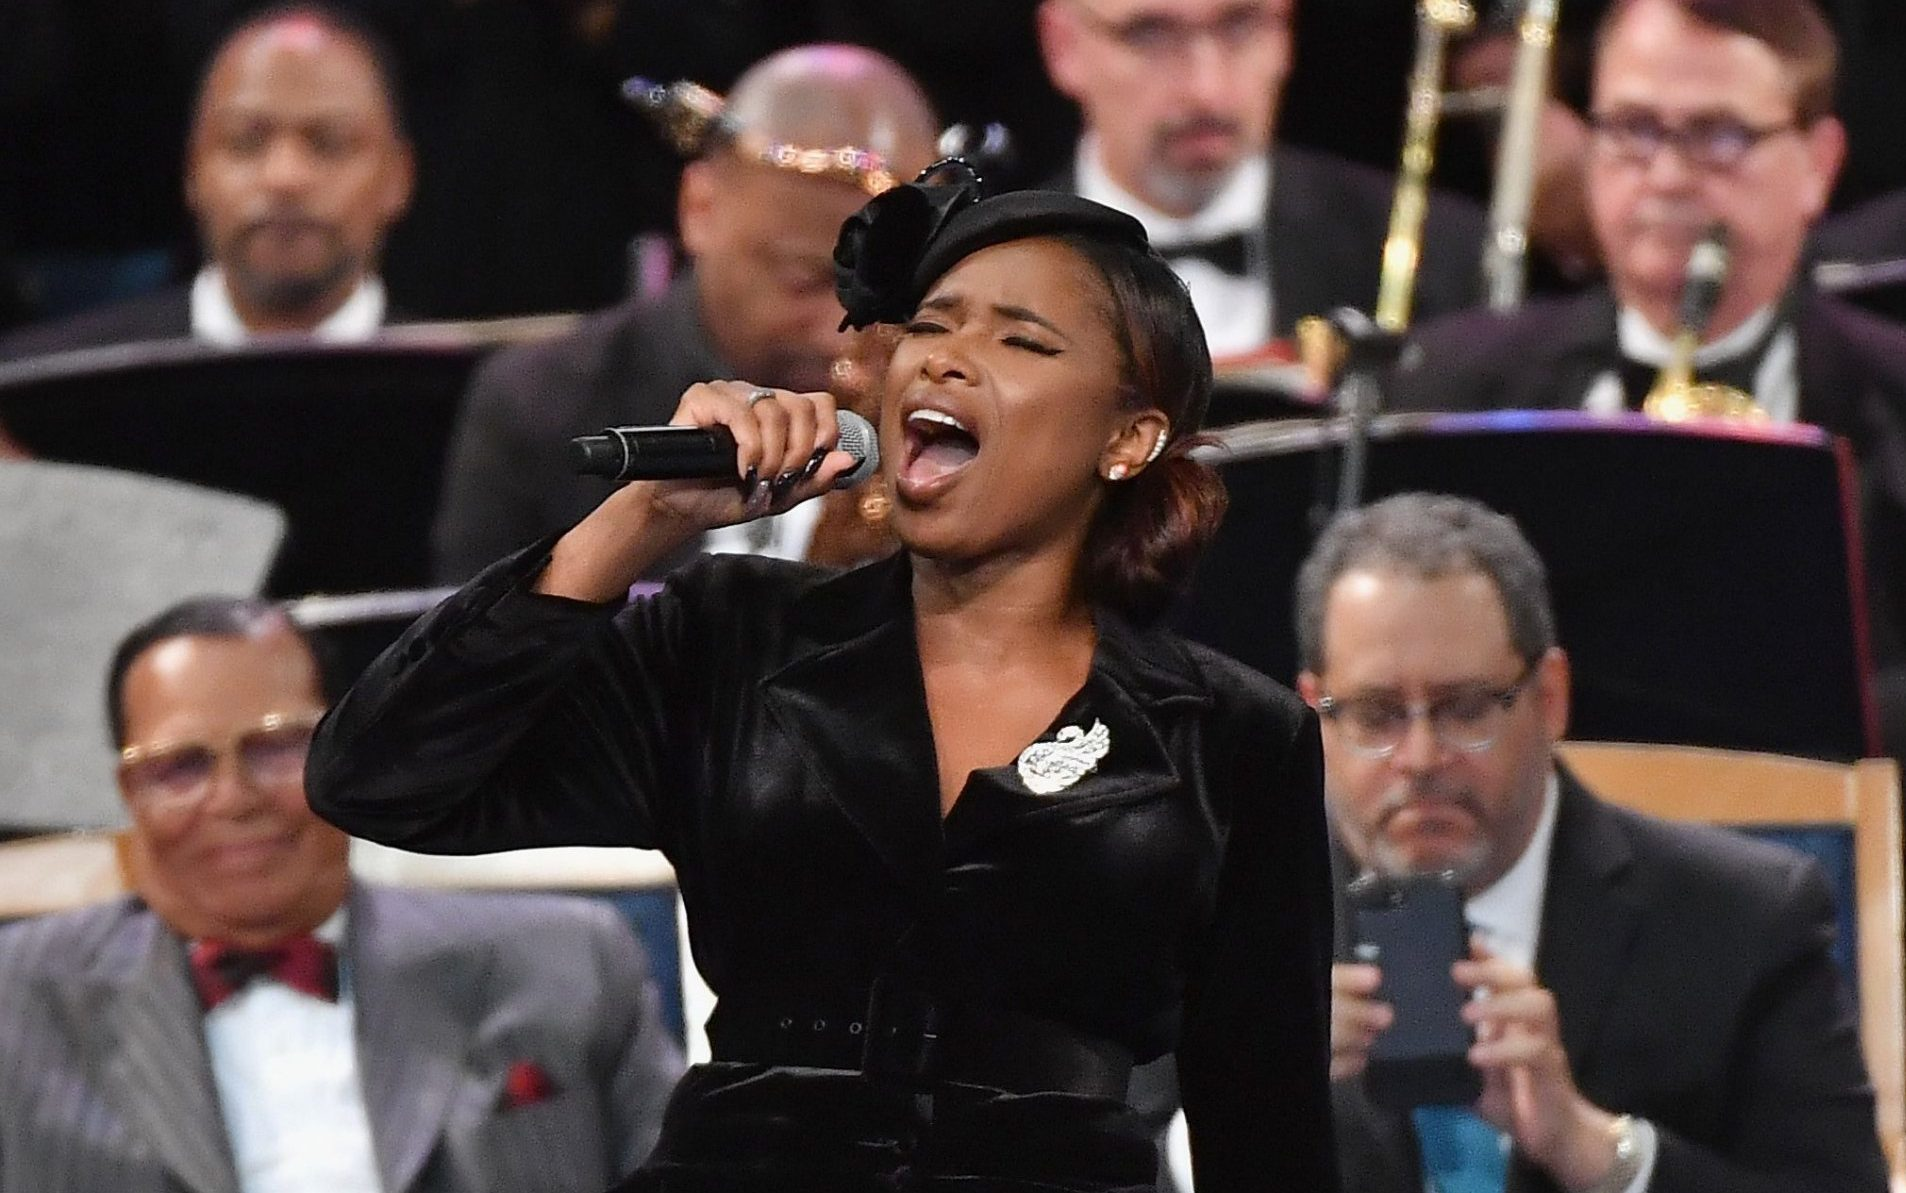 Jennifer Hudson delivers stunning rendition of Amazing Grace at Aretha Franklin's funeral